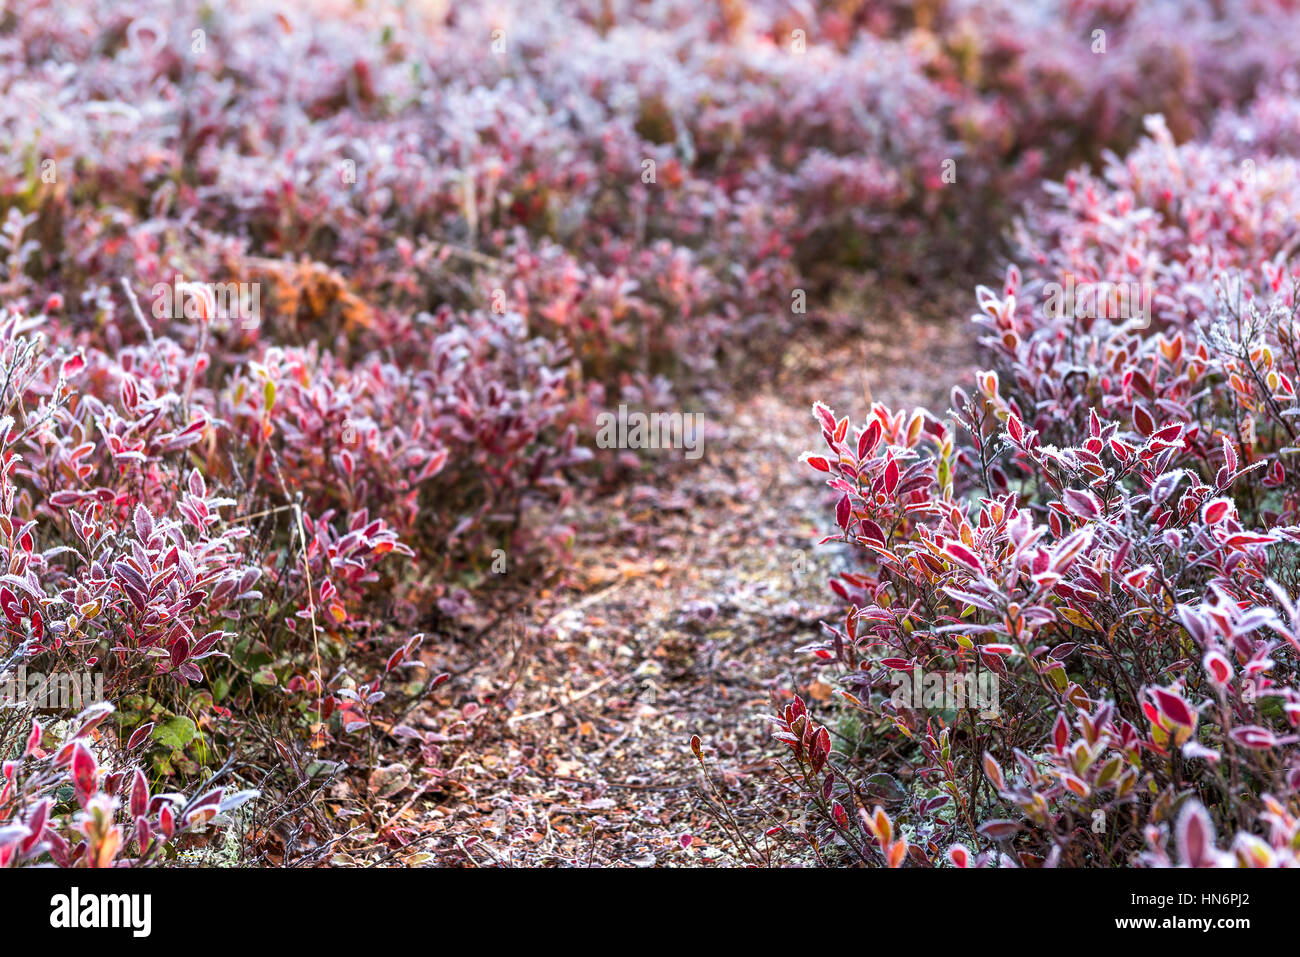 Icy frost on blueberry bush trail path illuminated by morning sunlight at Dolly Sods, West Virginia - Stock Image